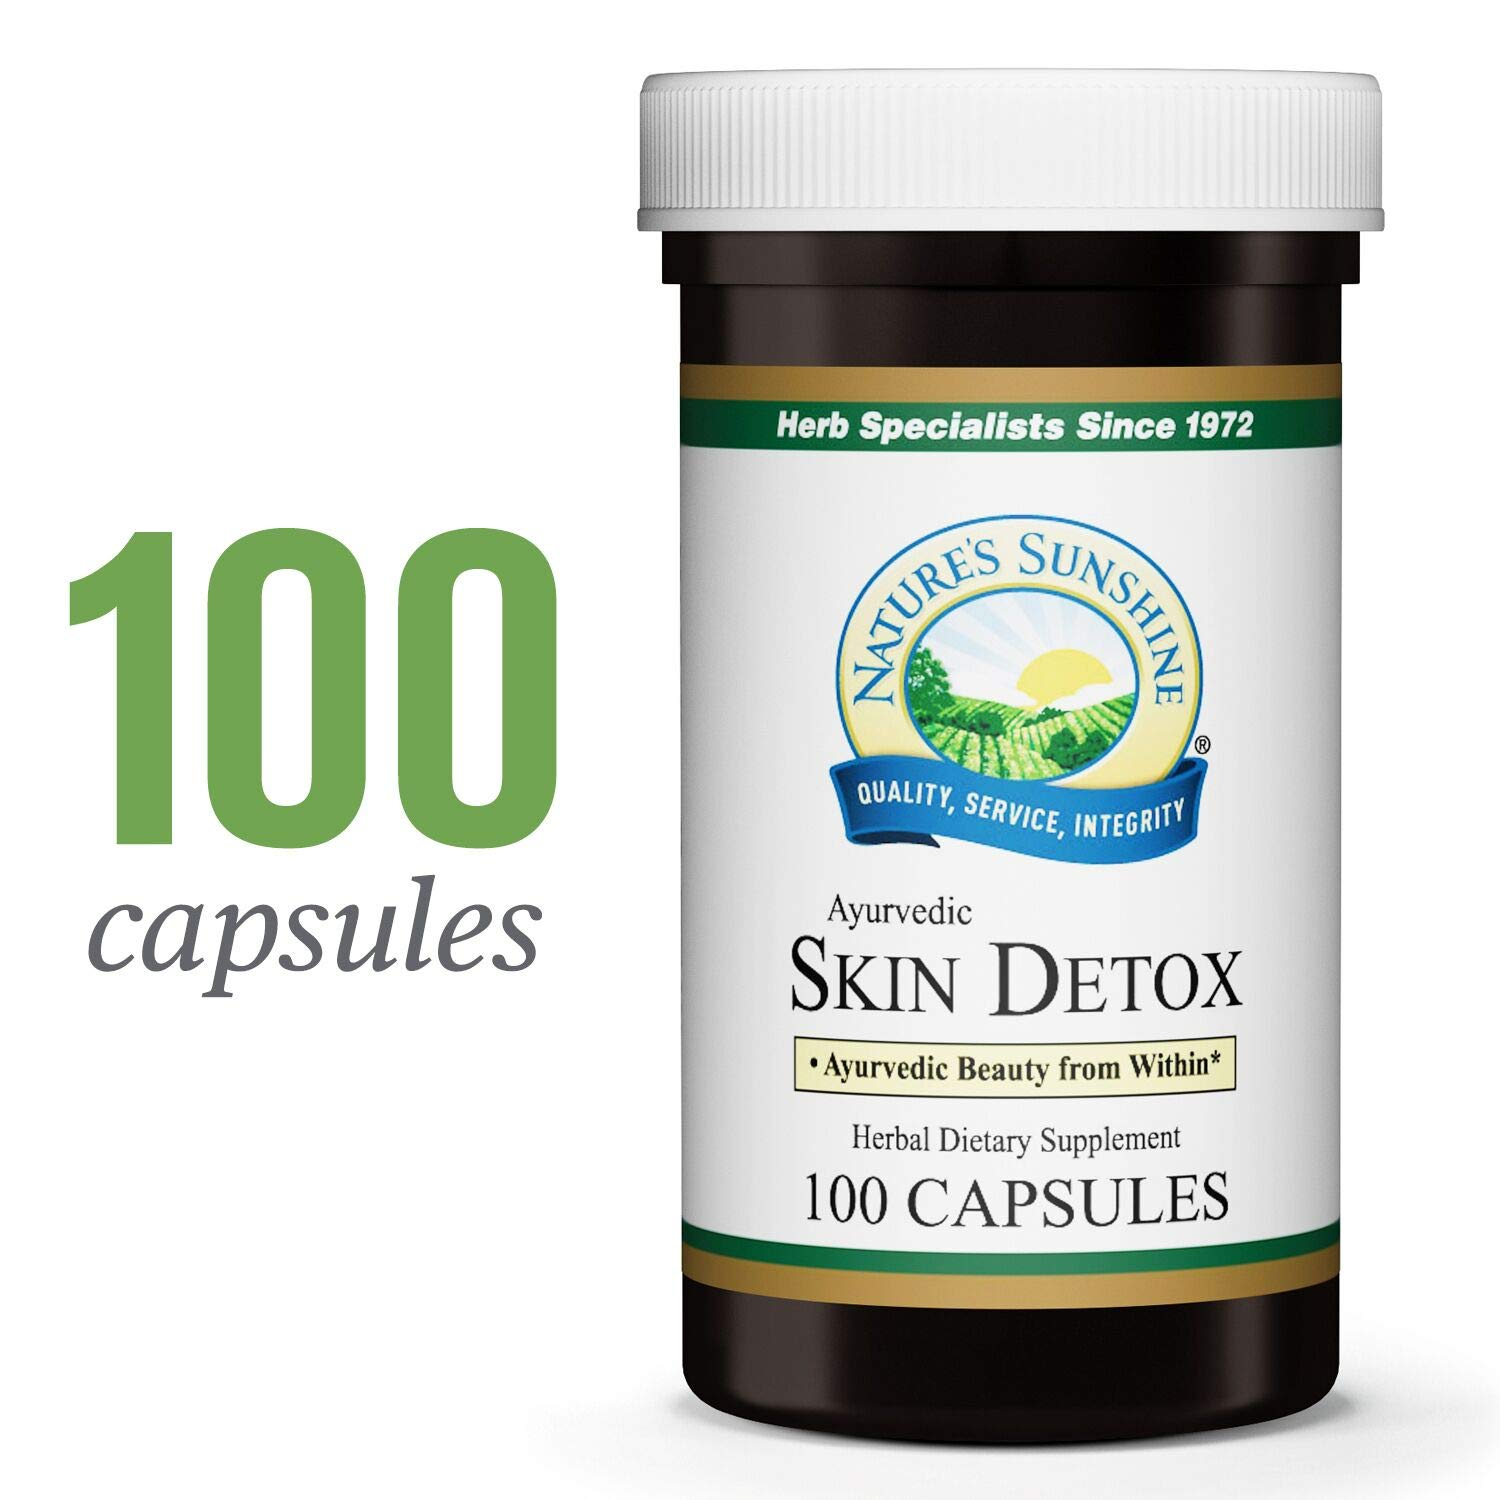 Nature s Sunshine Ayurvedic Skin Detox, 100 Capsules Helps Pull Toxins from The Skin to Support Skin Health and Support The Structural System